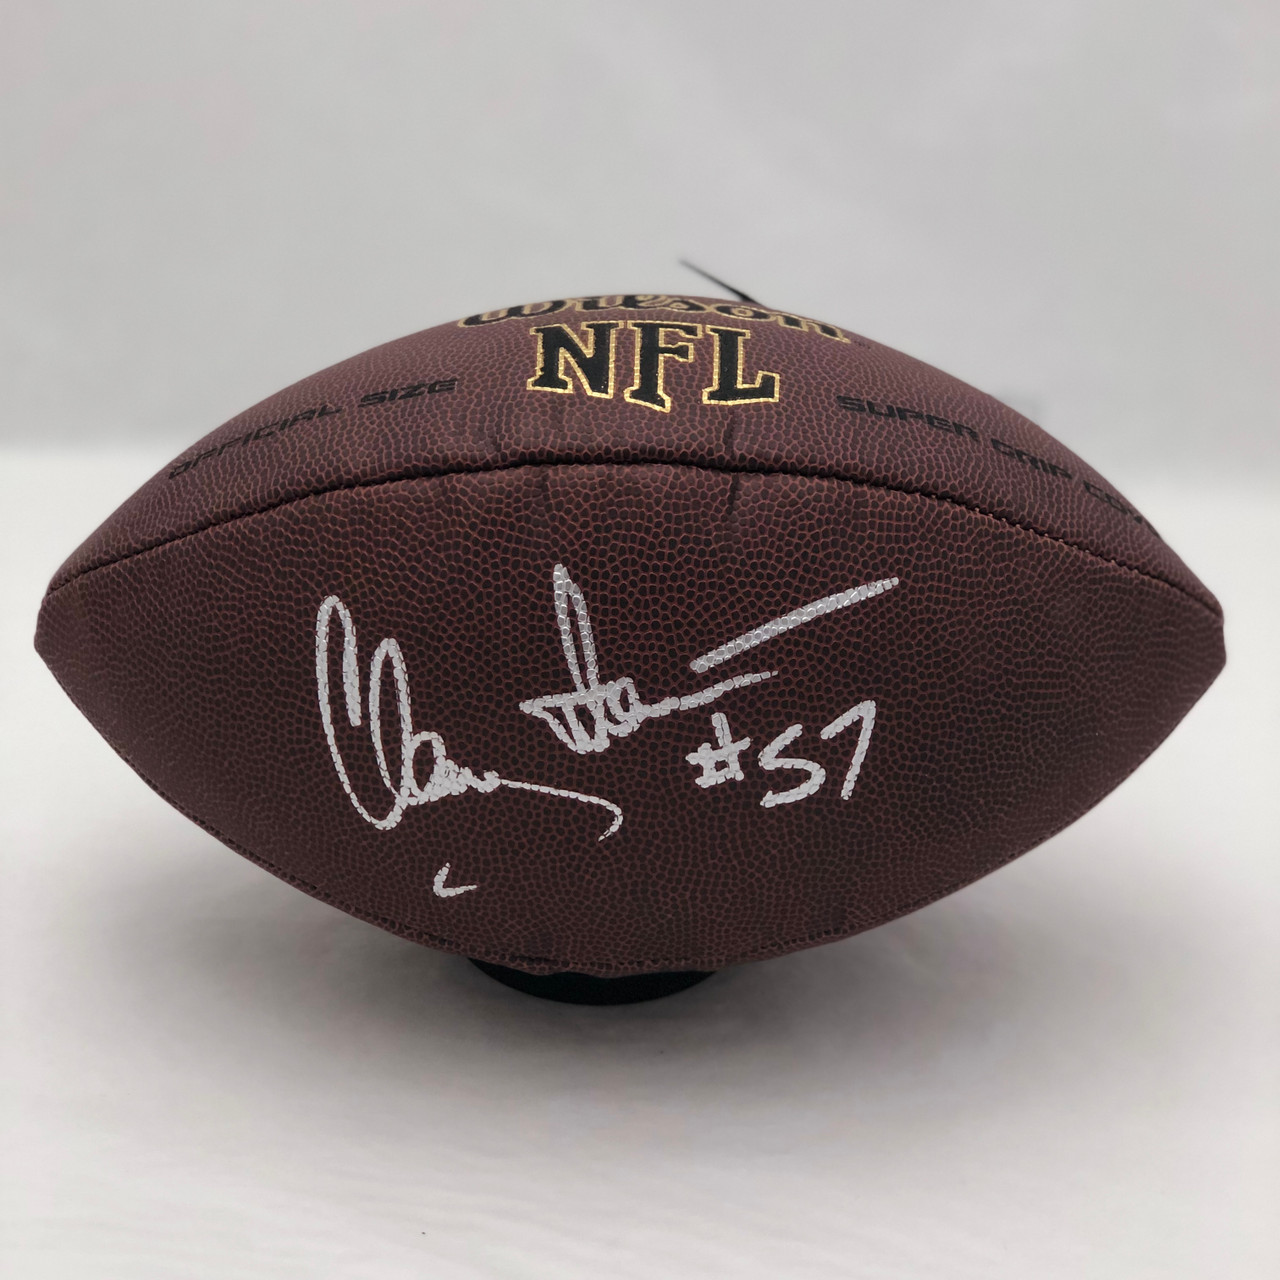 5ef3d5325 Clay Matthews Cleveland Browns Autographed Supergrip Football - PSA  Authentic